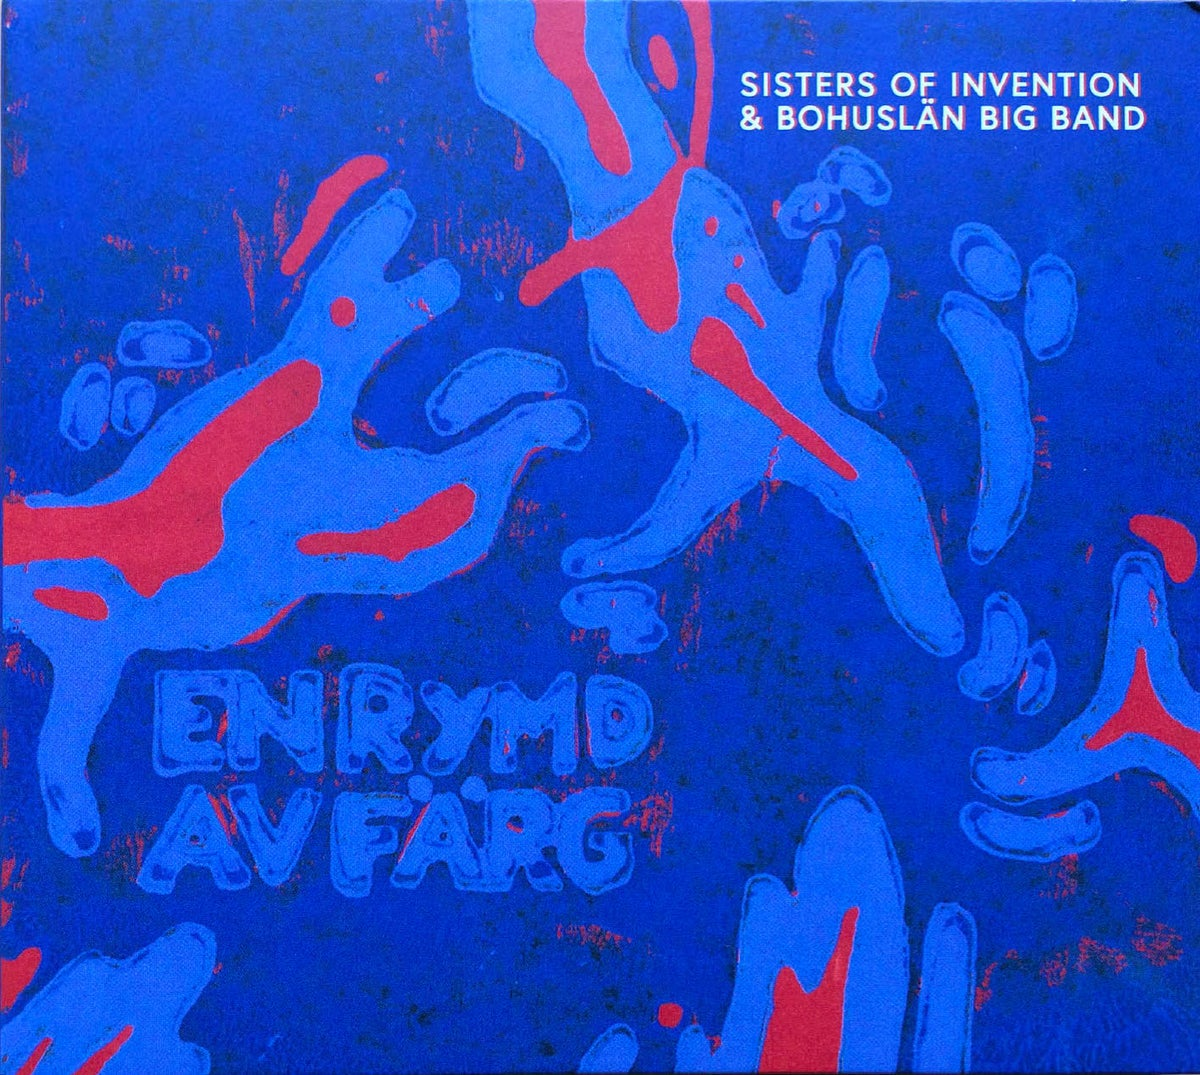 Image of En Rymd av Färg - Sisters of Invention & Bohuslän Big Band